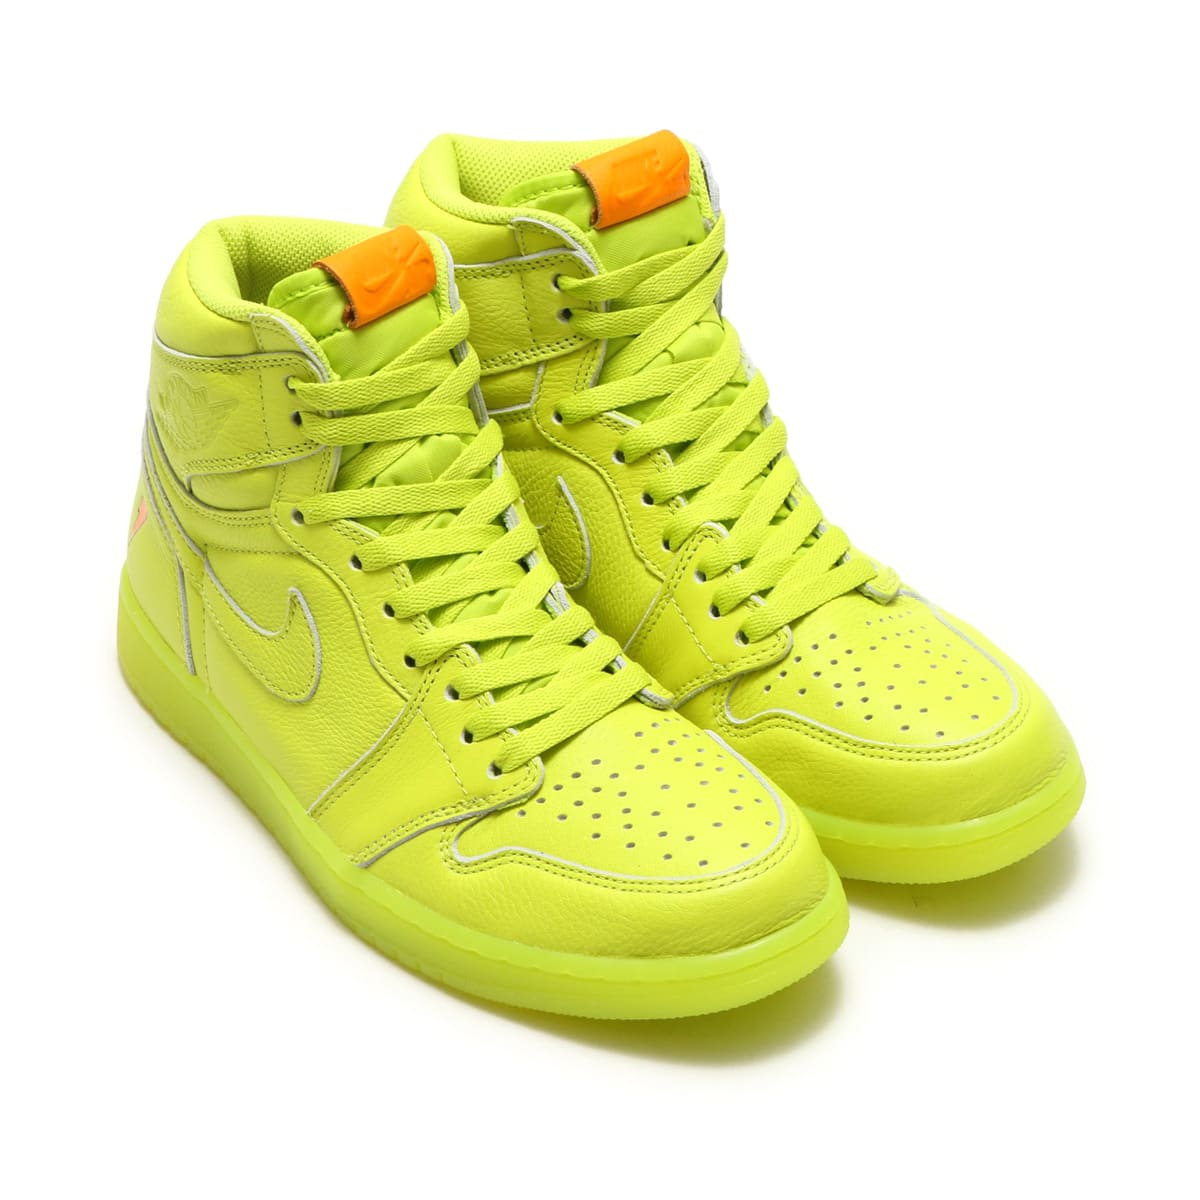 NIKE AIR JORDAN 1 RETRO HI OG G8RD  CYBER/CYBER_photo_large